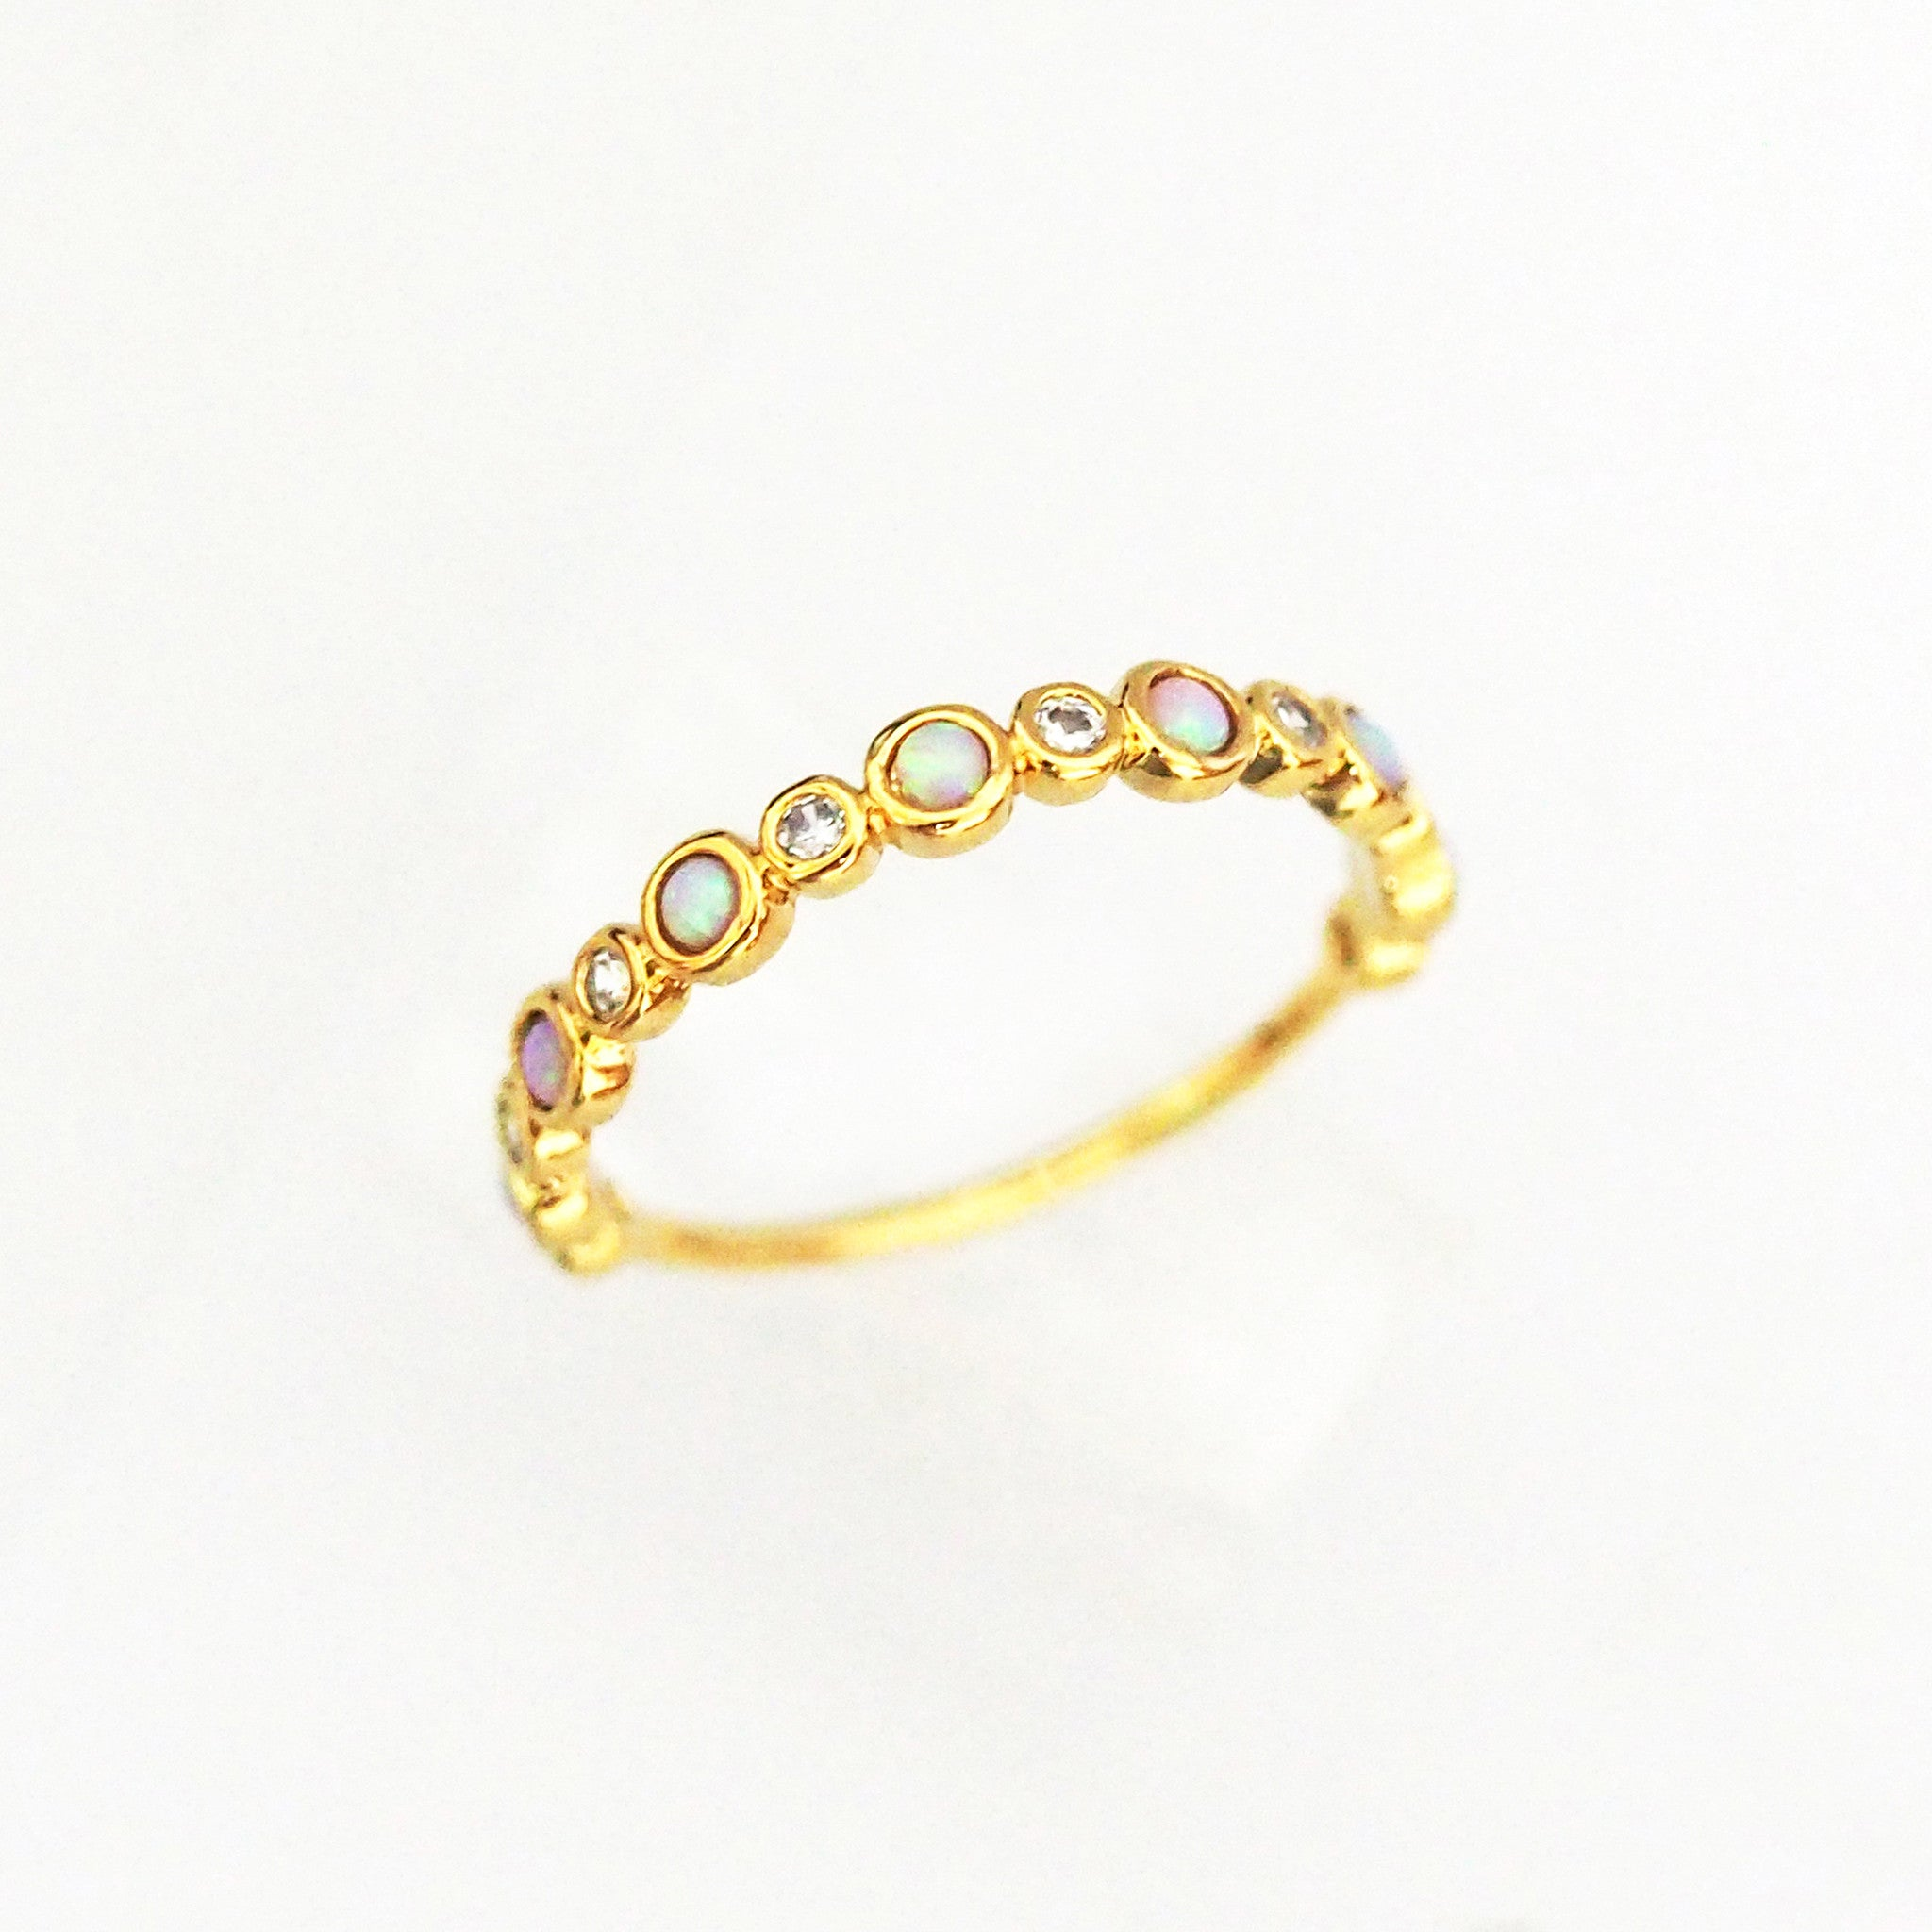 prism ring small next au gold sebastian rings nz sarah products